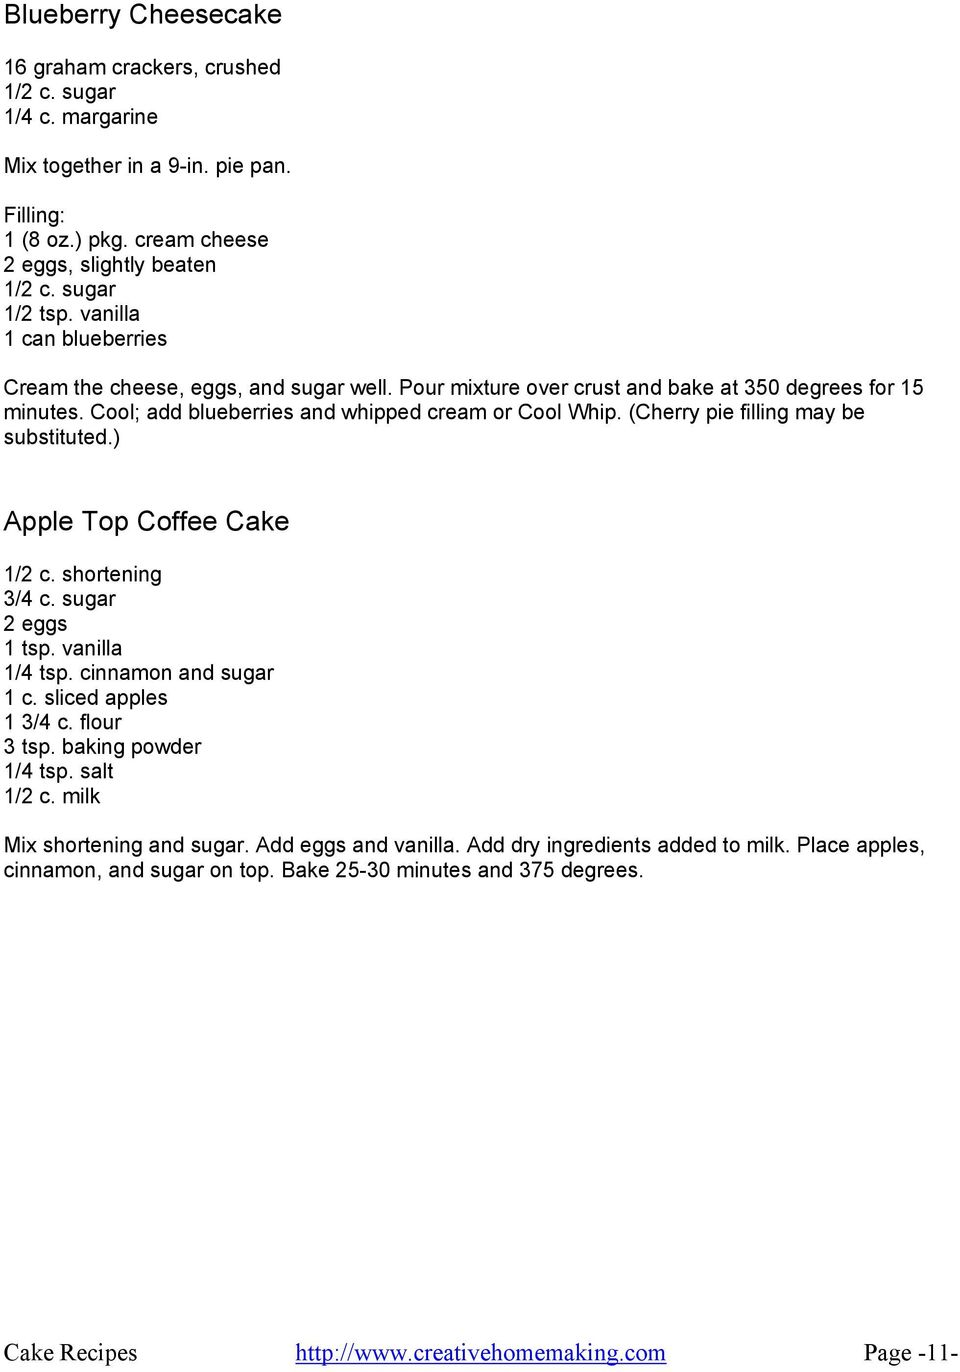 (Cherry pie filling may be substituted.) Apple Top Coffee Cake 1/2 c. shortening 3/4 c. sugar 2 eggs 1/4 tsp. cinnamon and sugar 1 c. sliced apples 1 3/4 c. flour 3 tsp. baking powder 1/4 tsp.